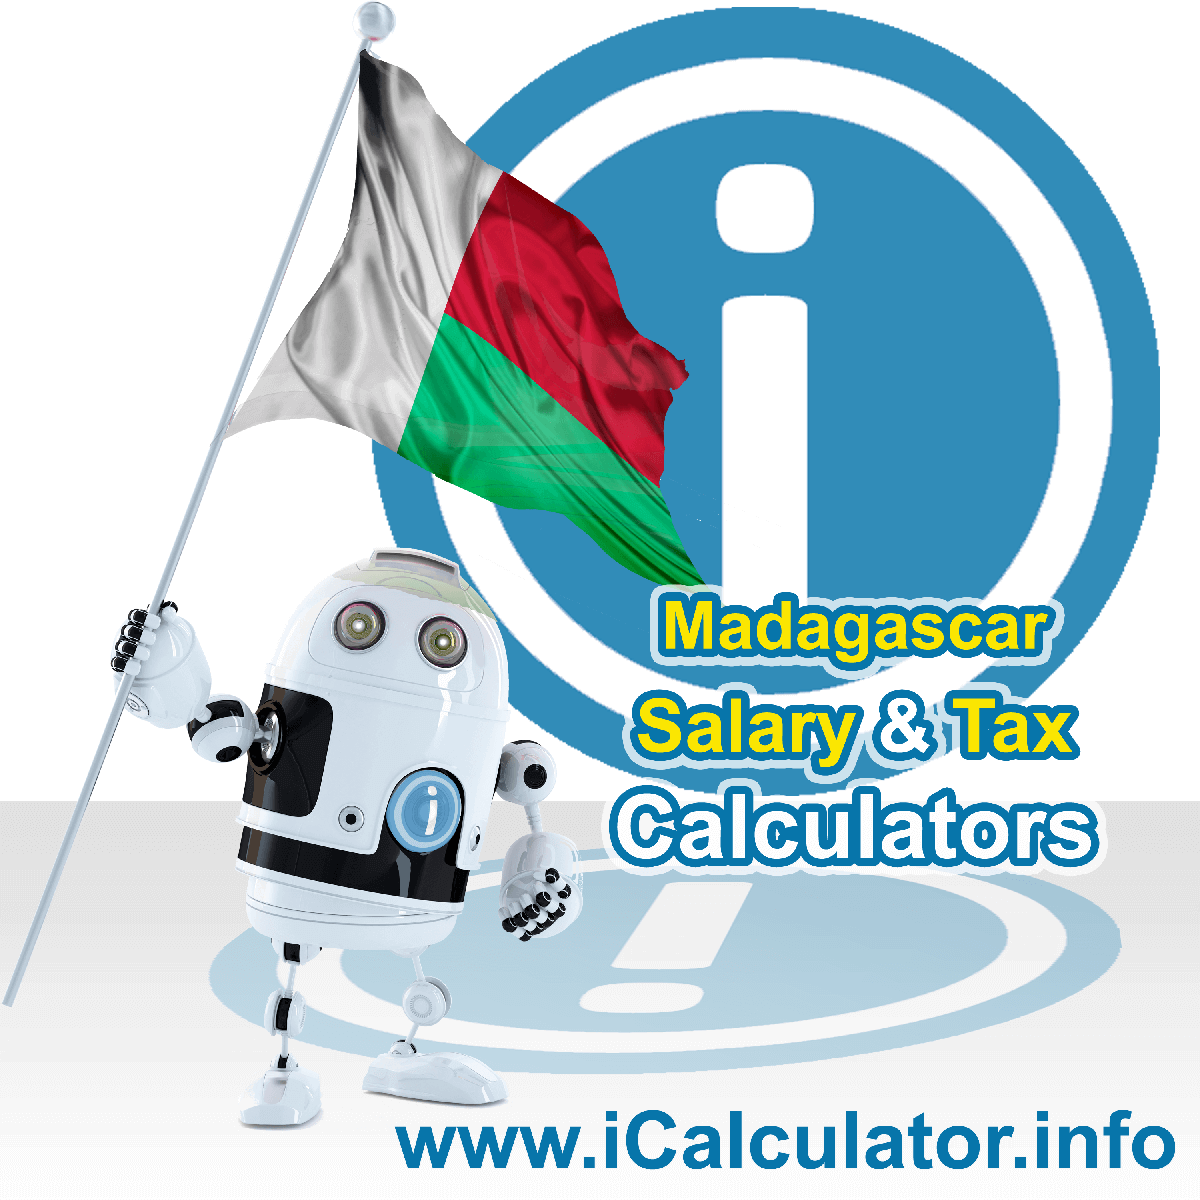 Madagascar Tax Calculator. This image shows the Madagascar flag and information relating to the tax formula for the Madagascar Salary Calculator